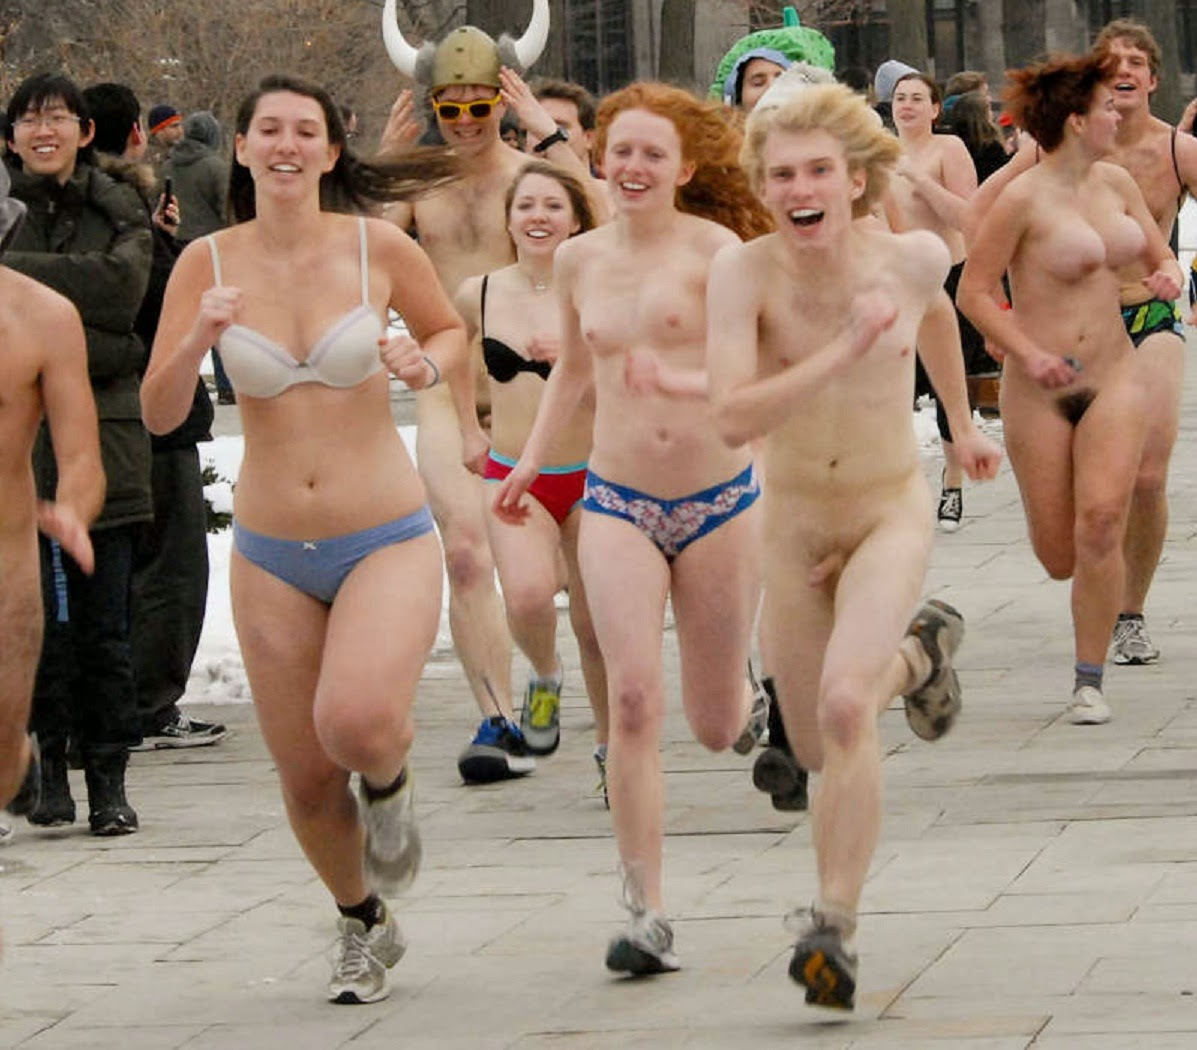 Naked college girls running can not